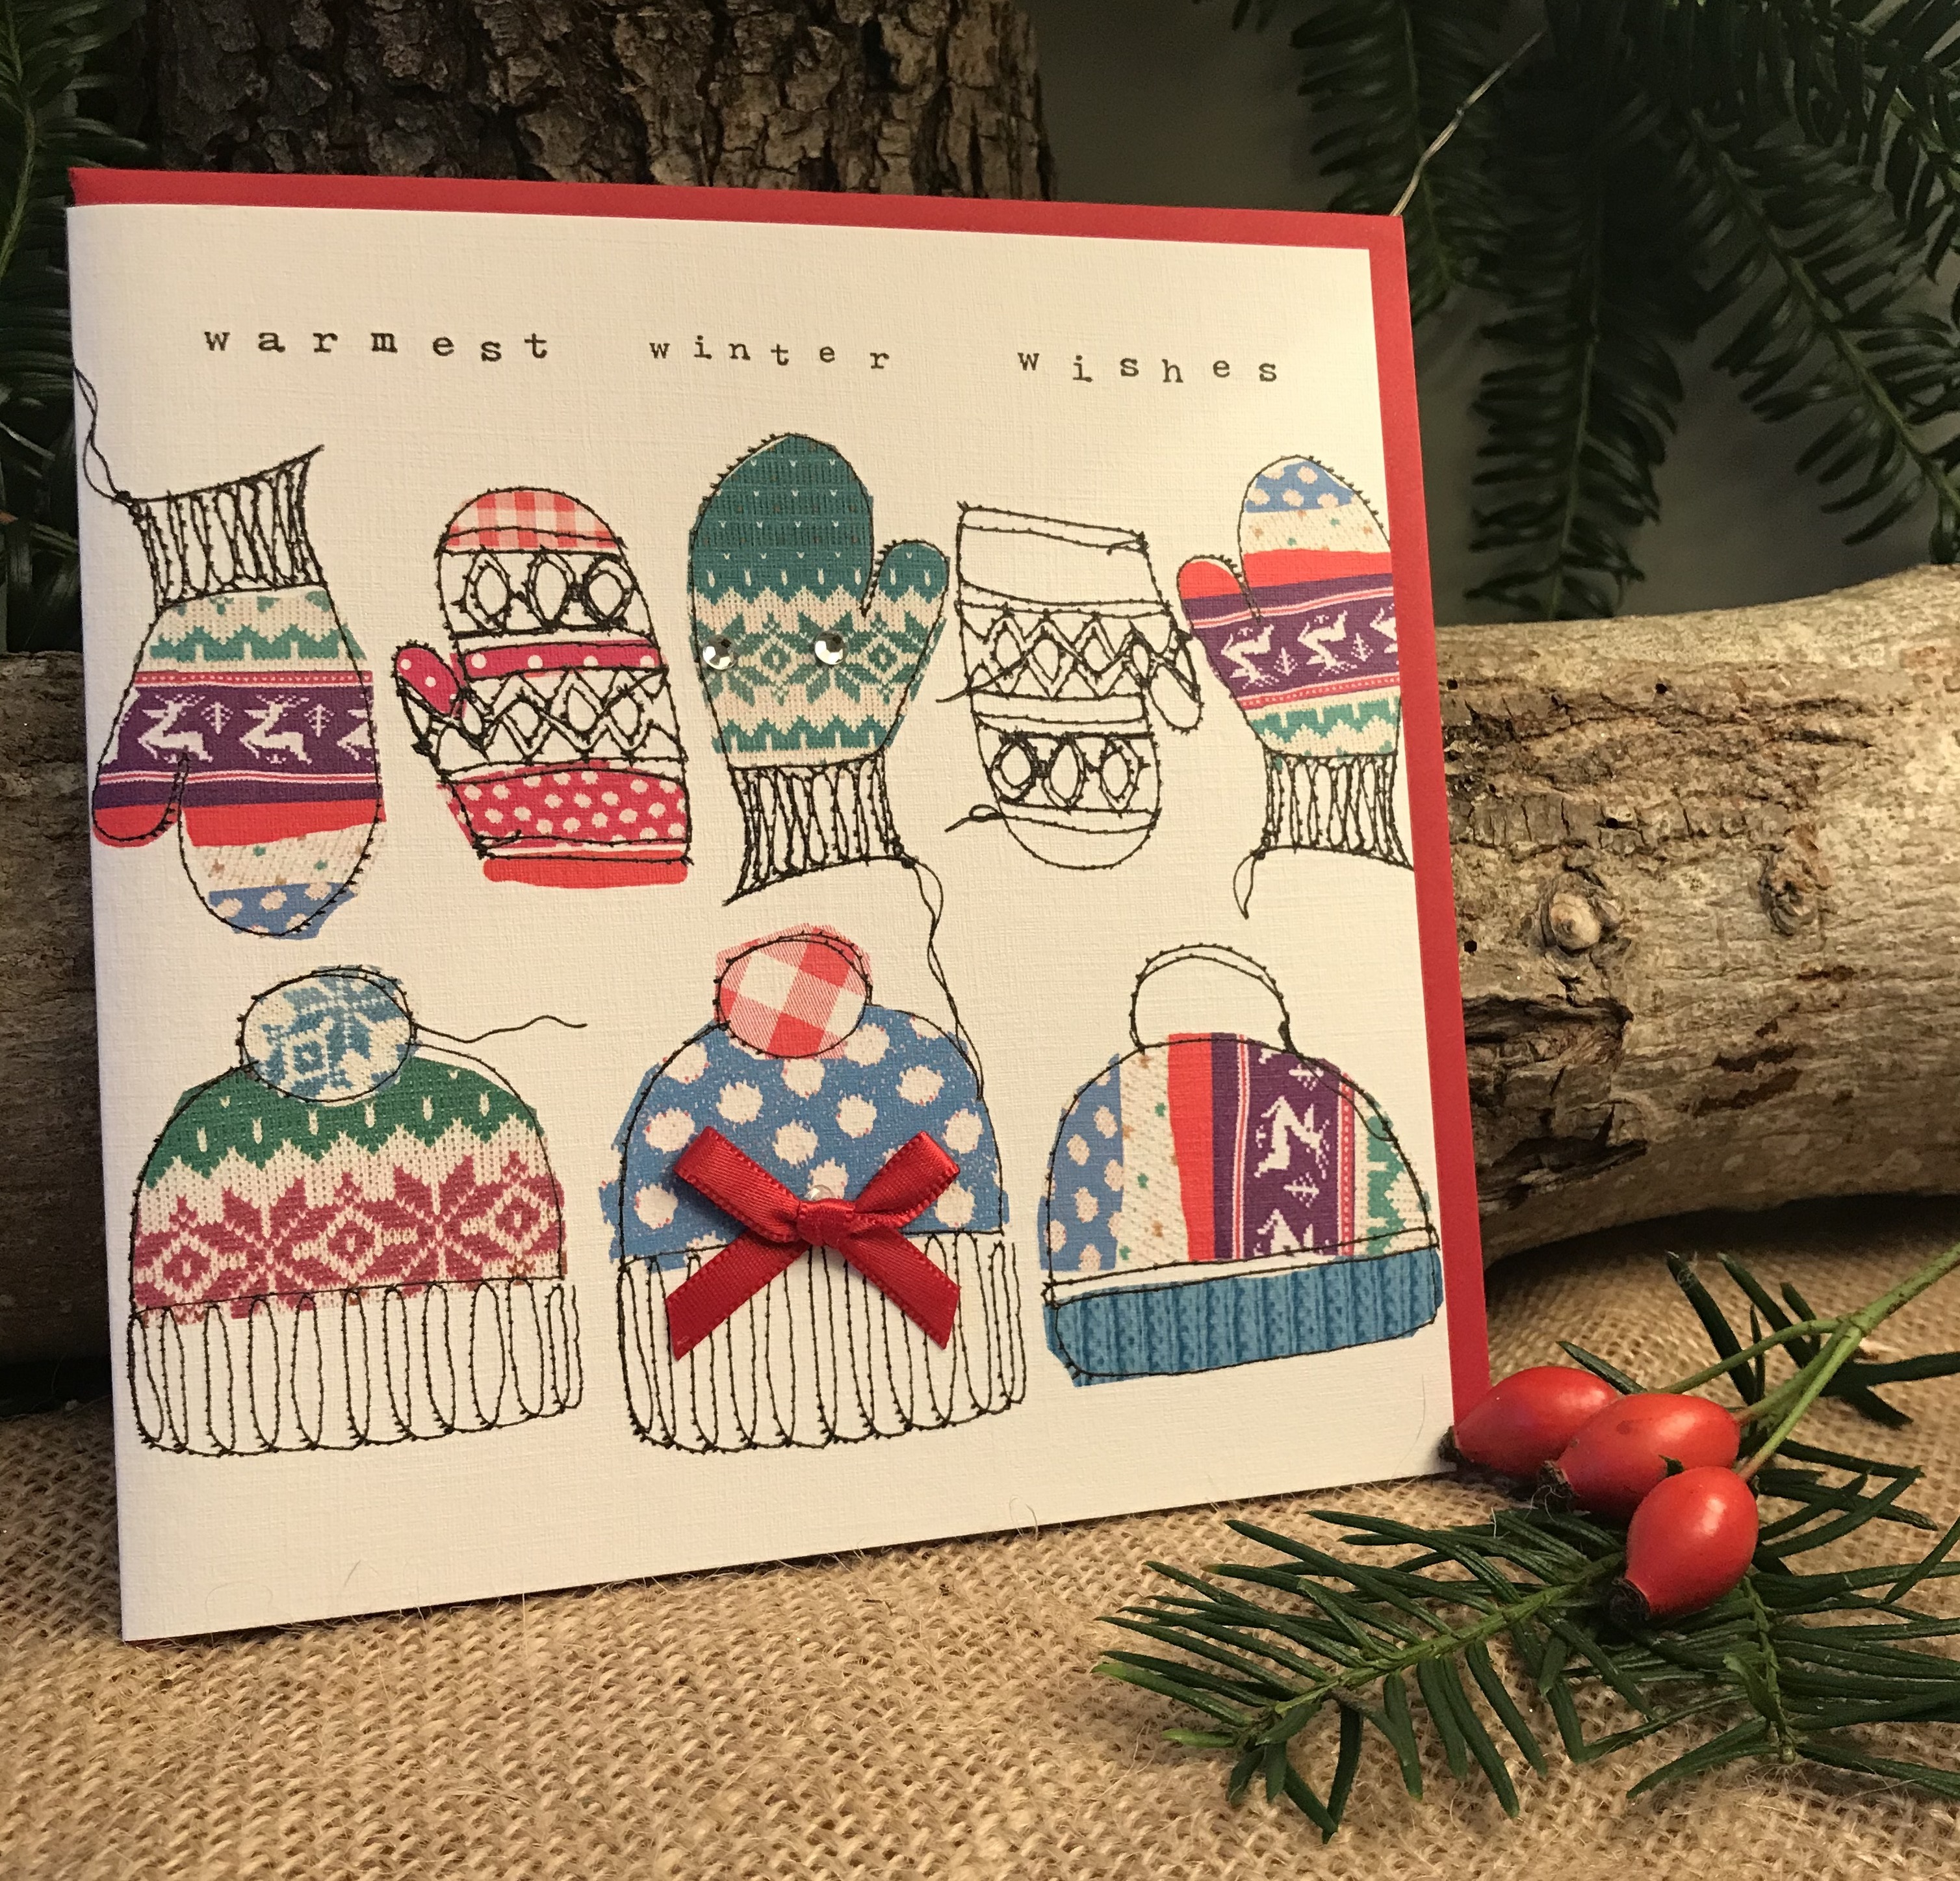 'Warmest Winter Wishes' Christmas Card - was £3.50